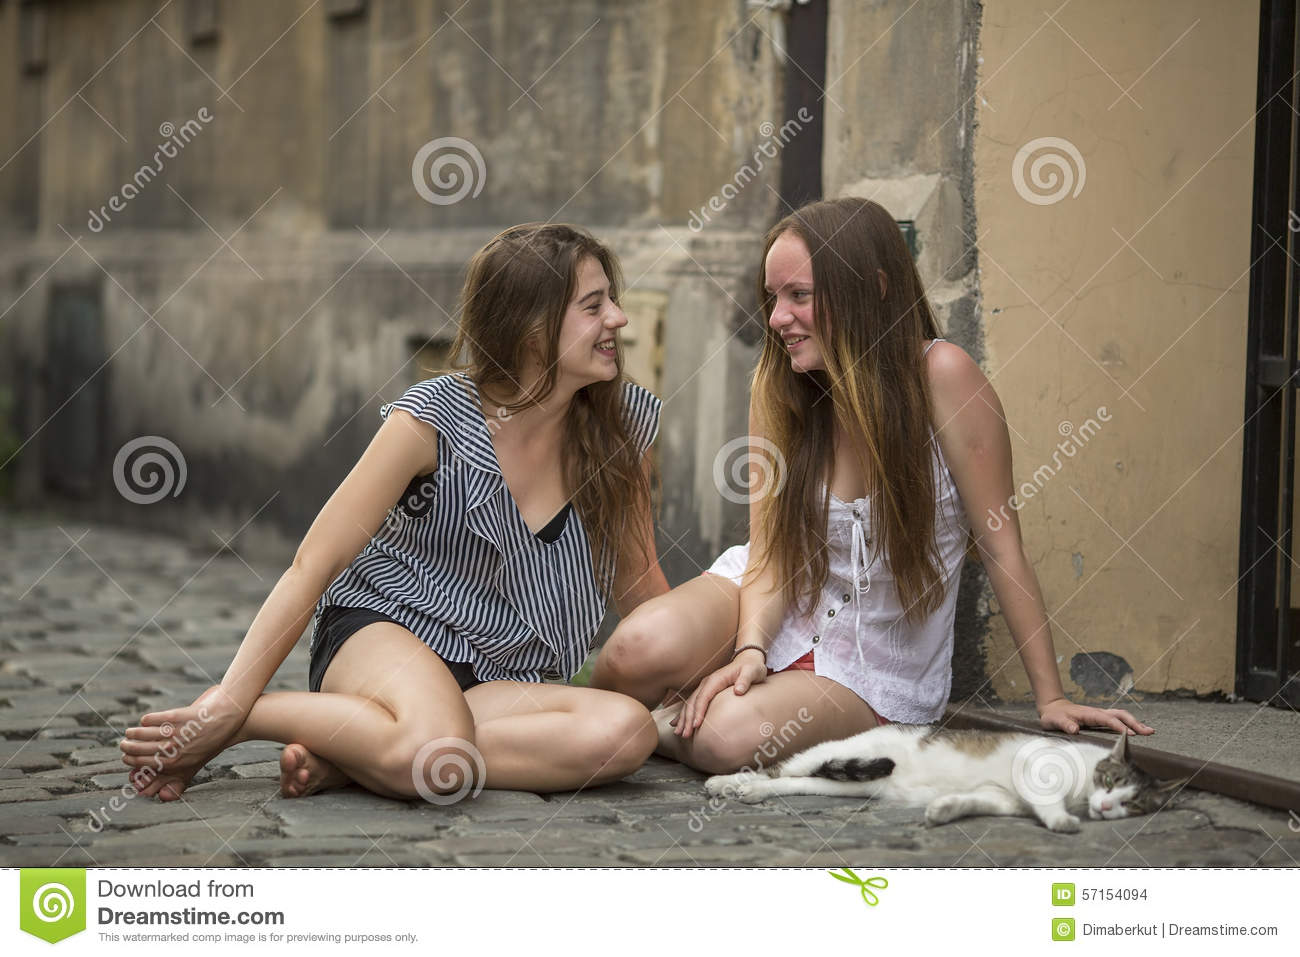 Two girls girlfriend with a cat sitting on the pavement on the street.